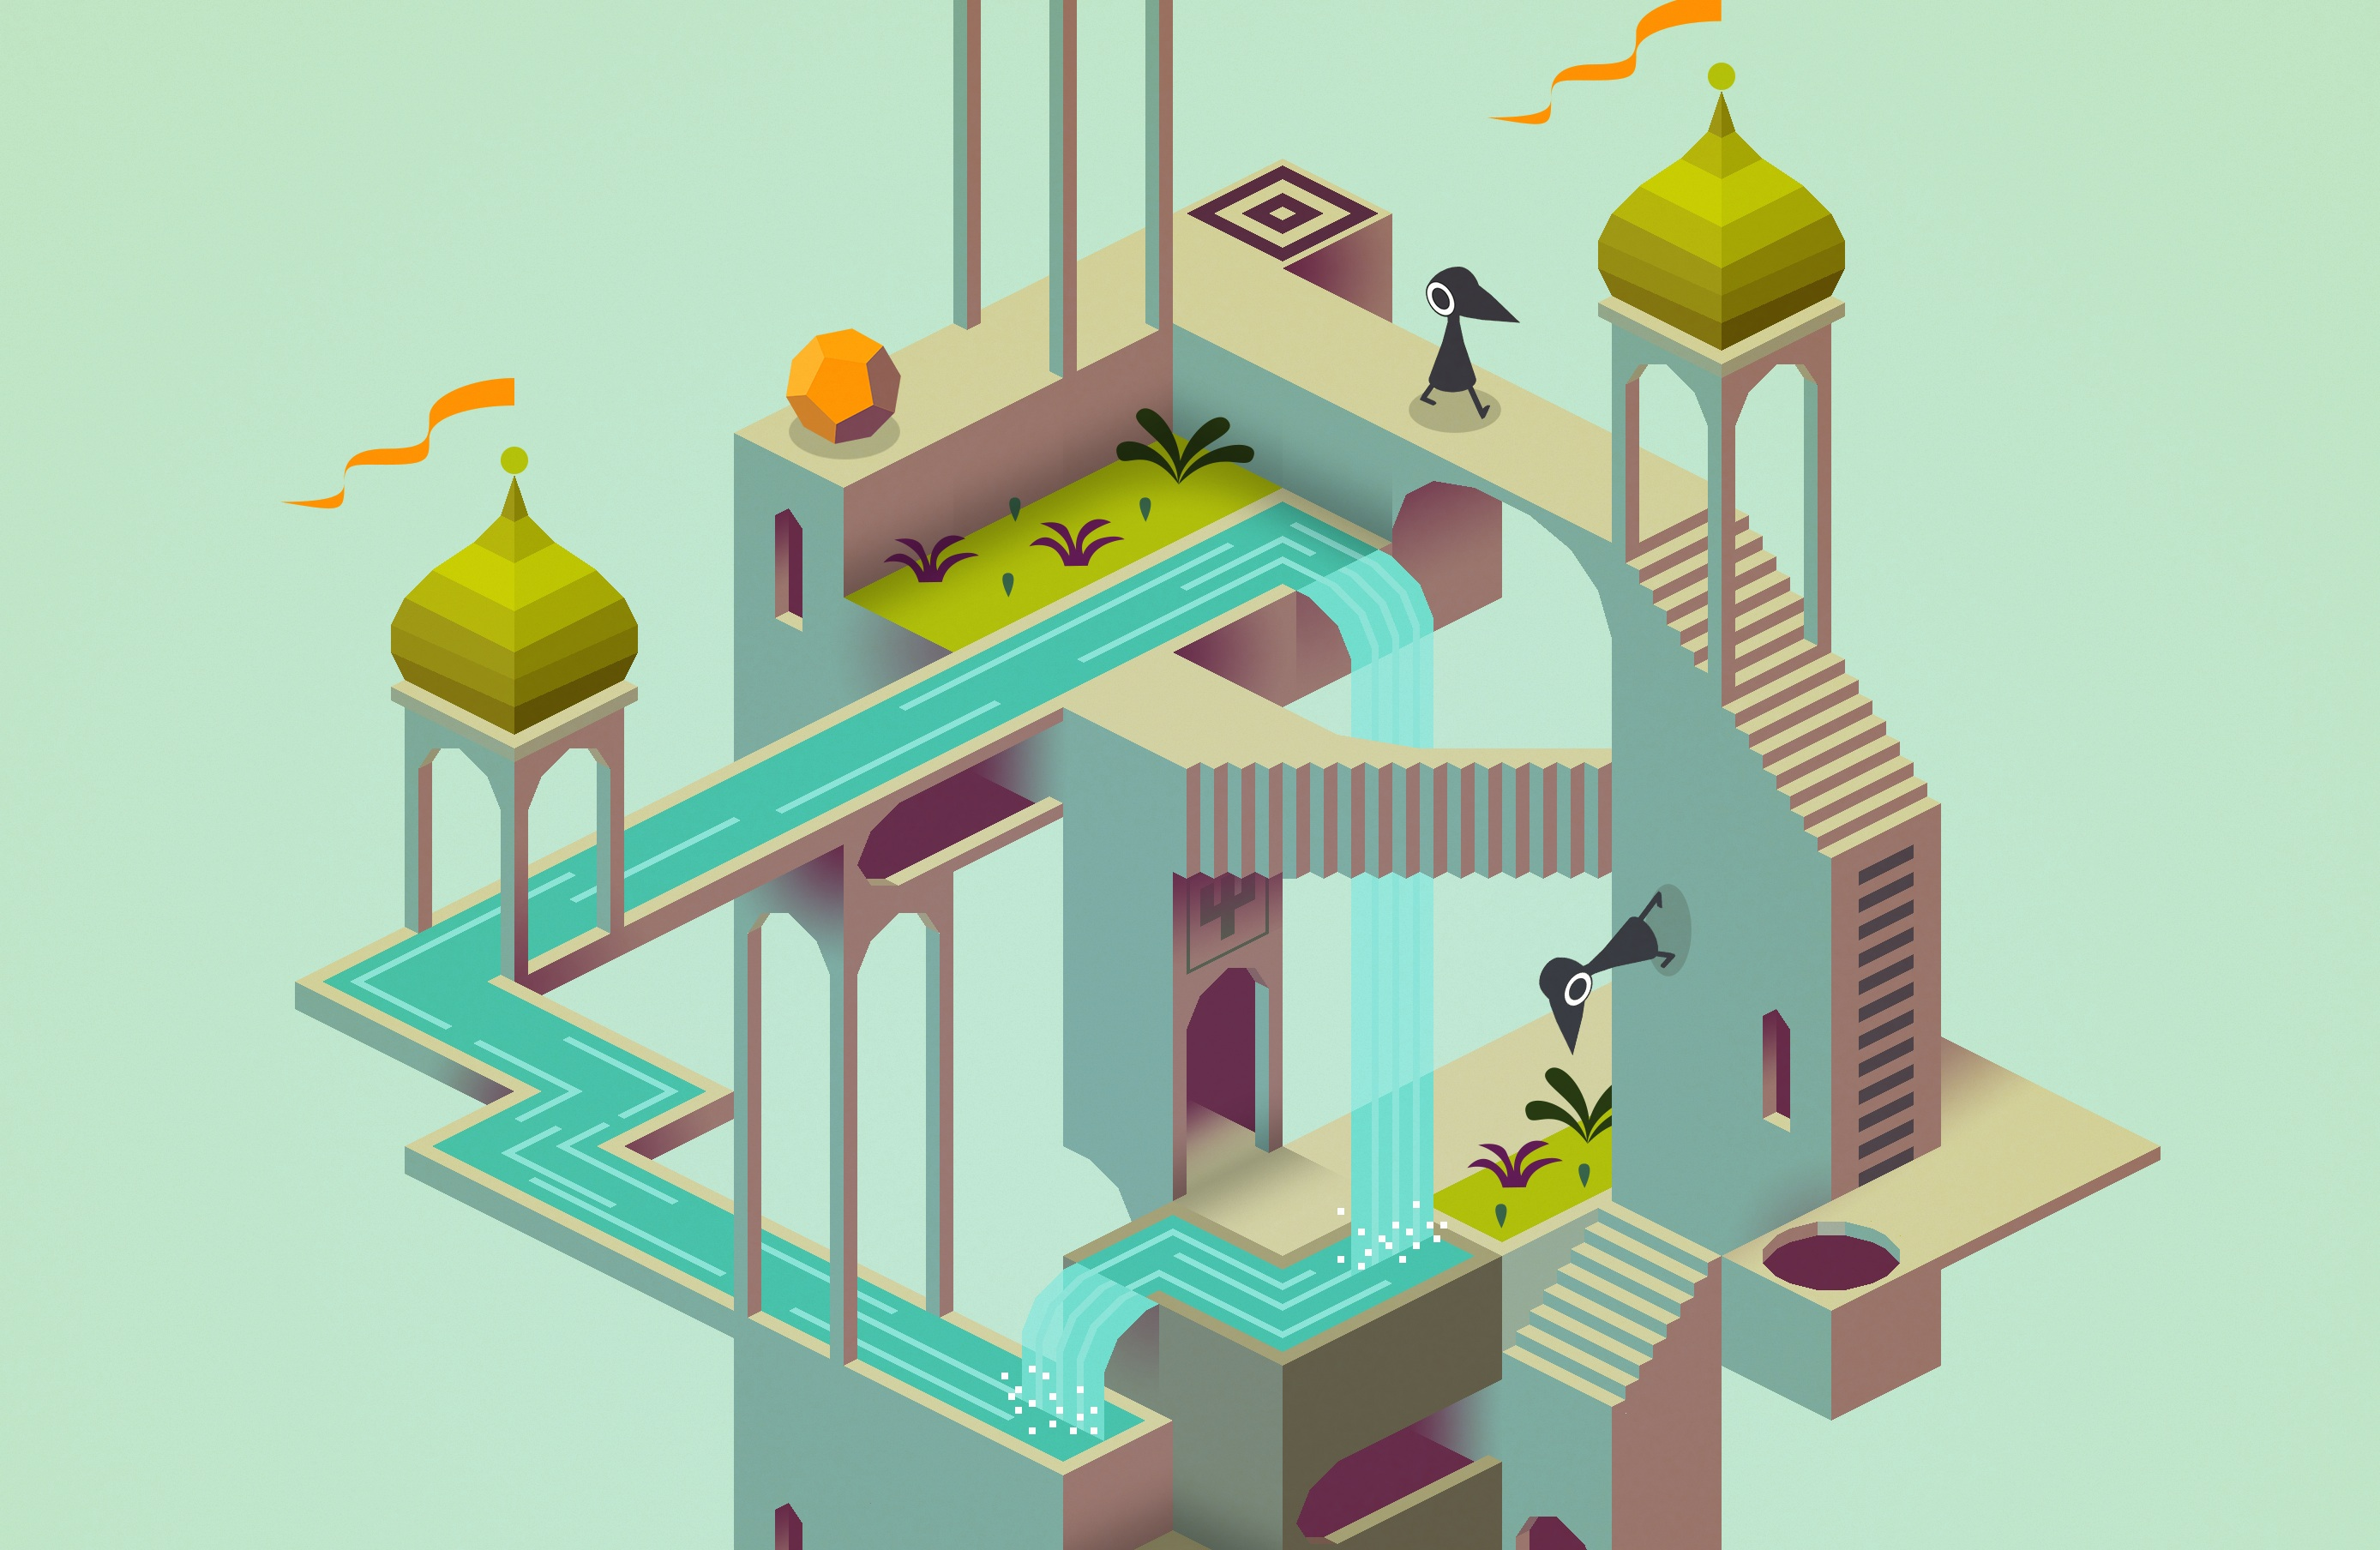 Only 5 percent of Monument Valley players paid for the game on Android